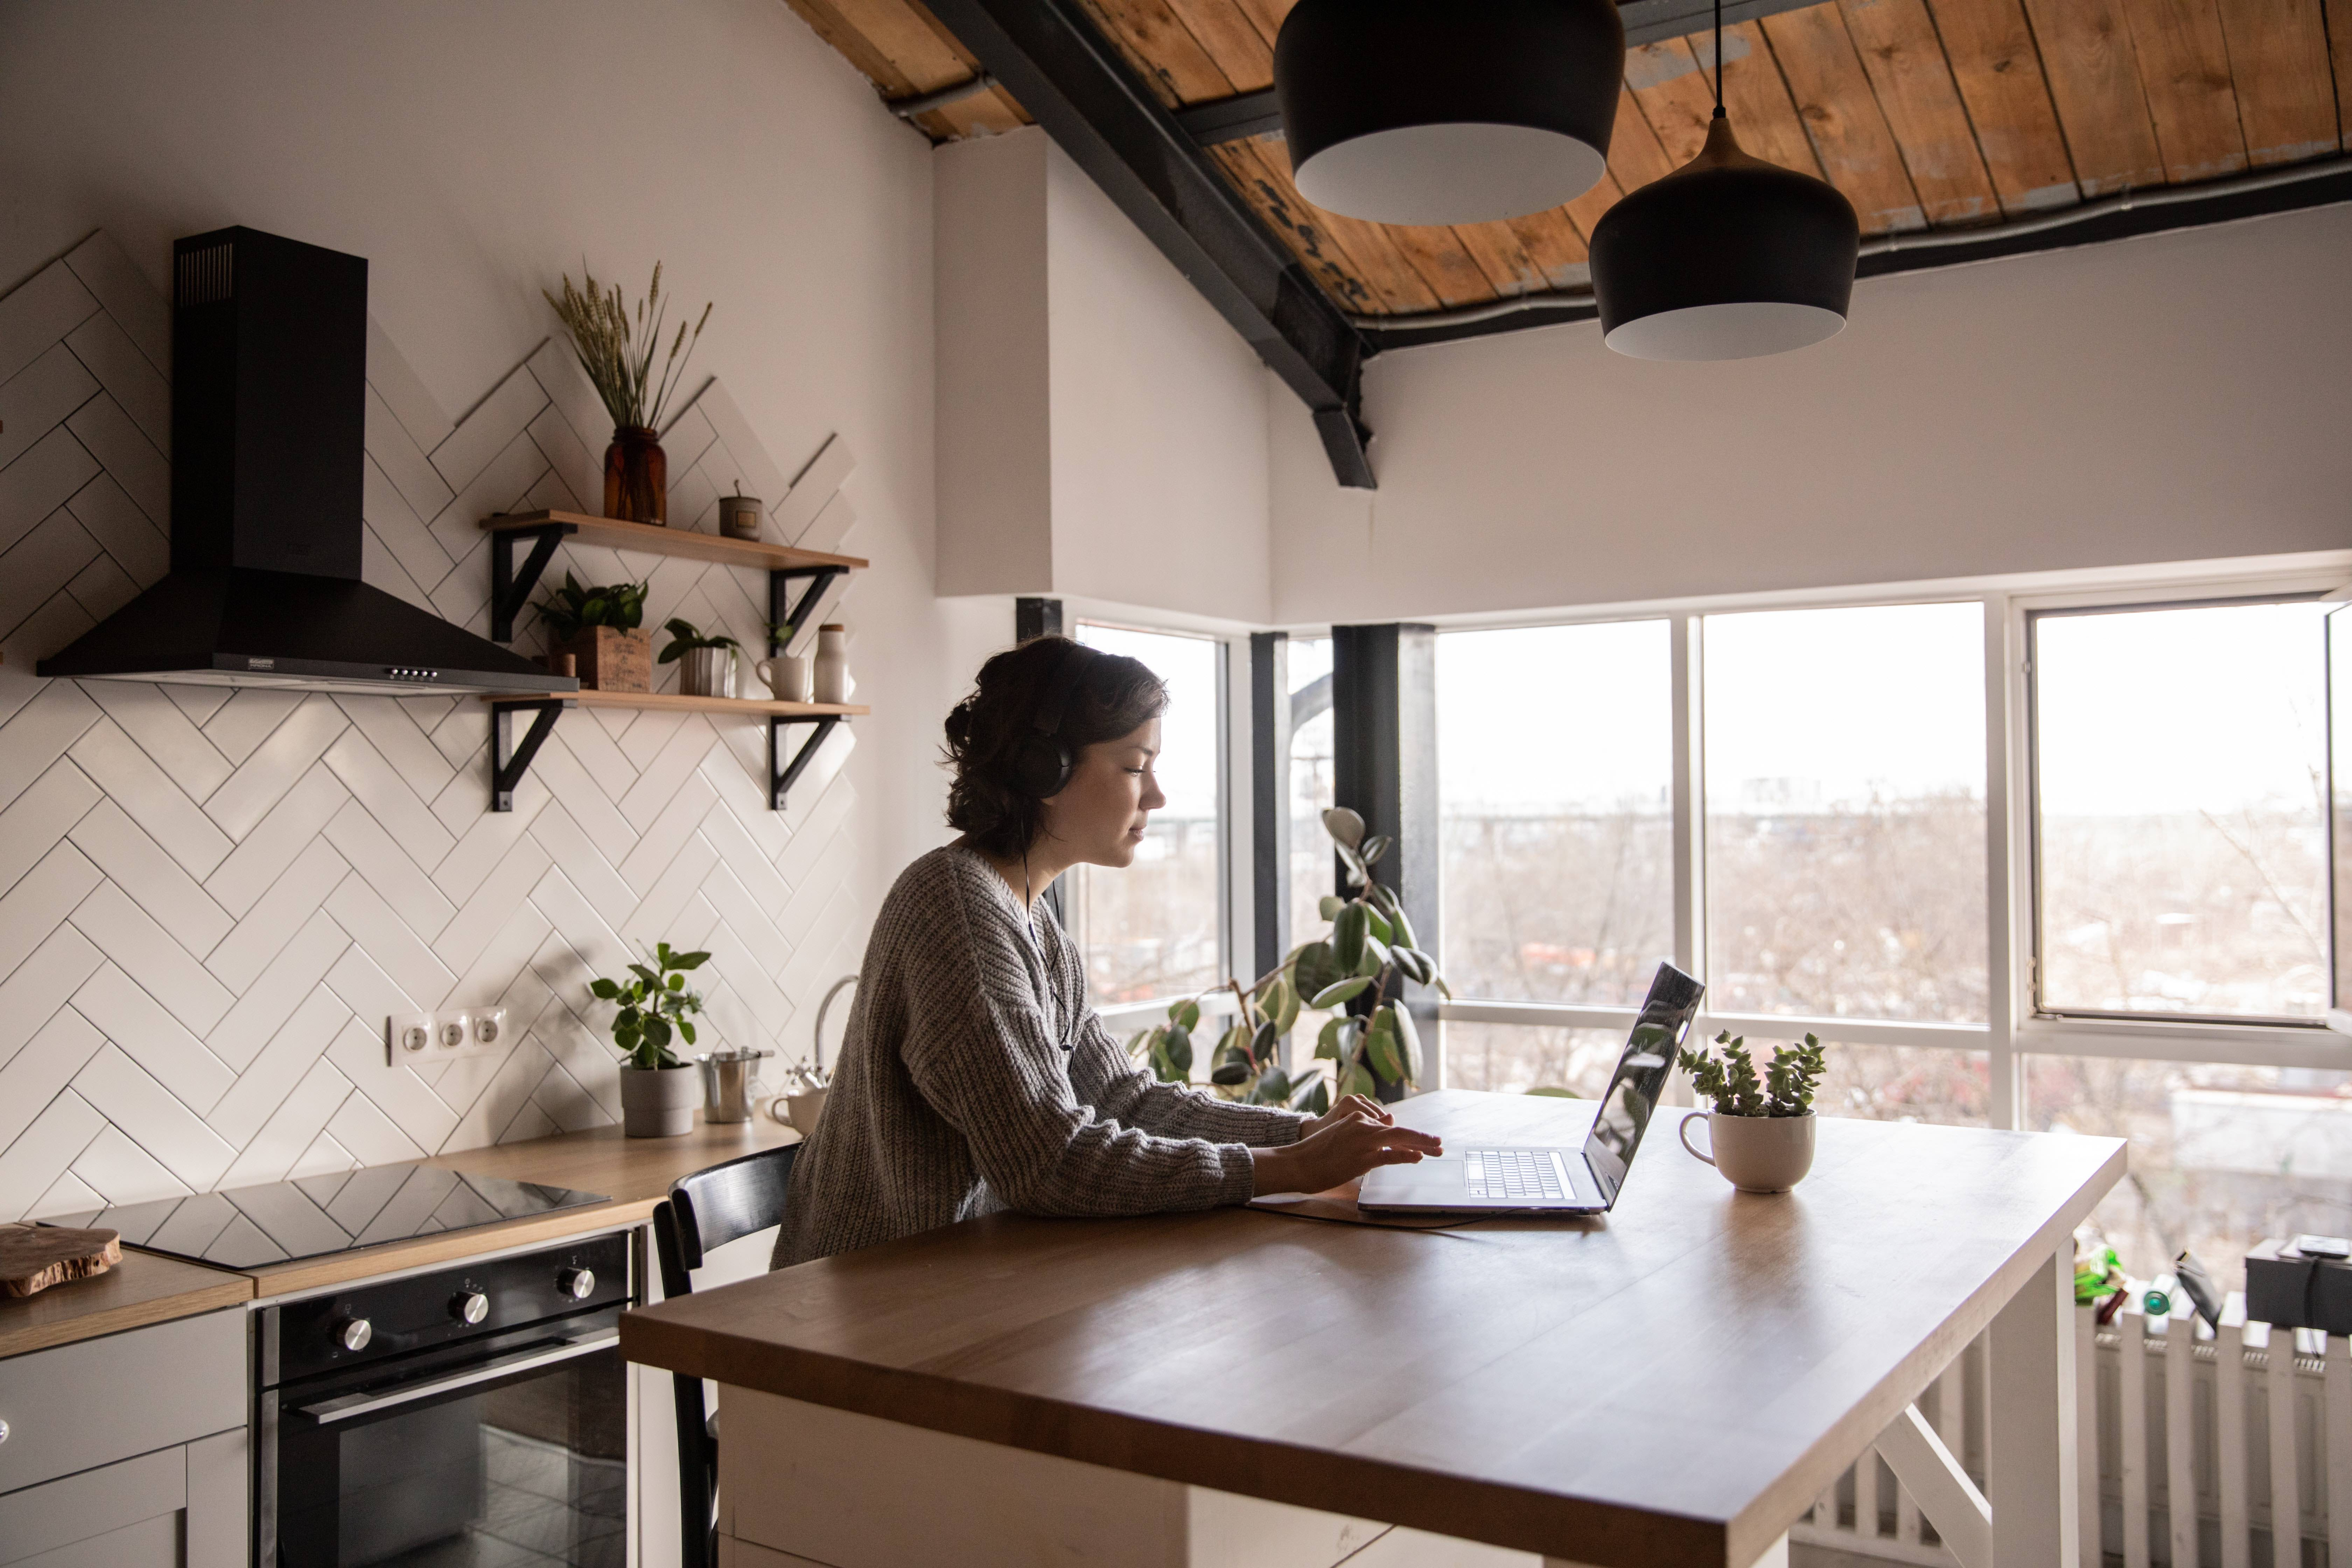 Maintaining office community when working remote